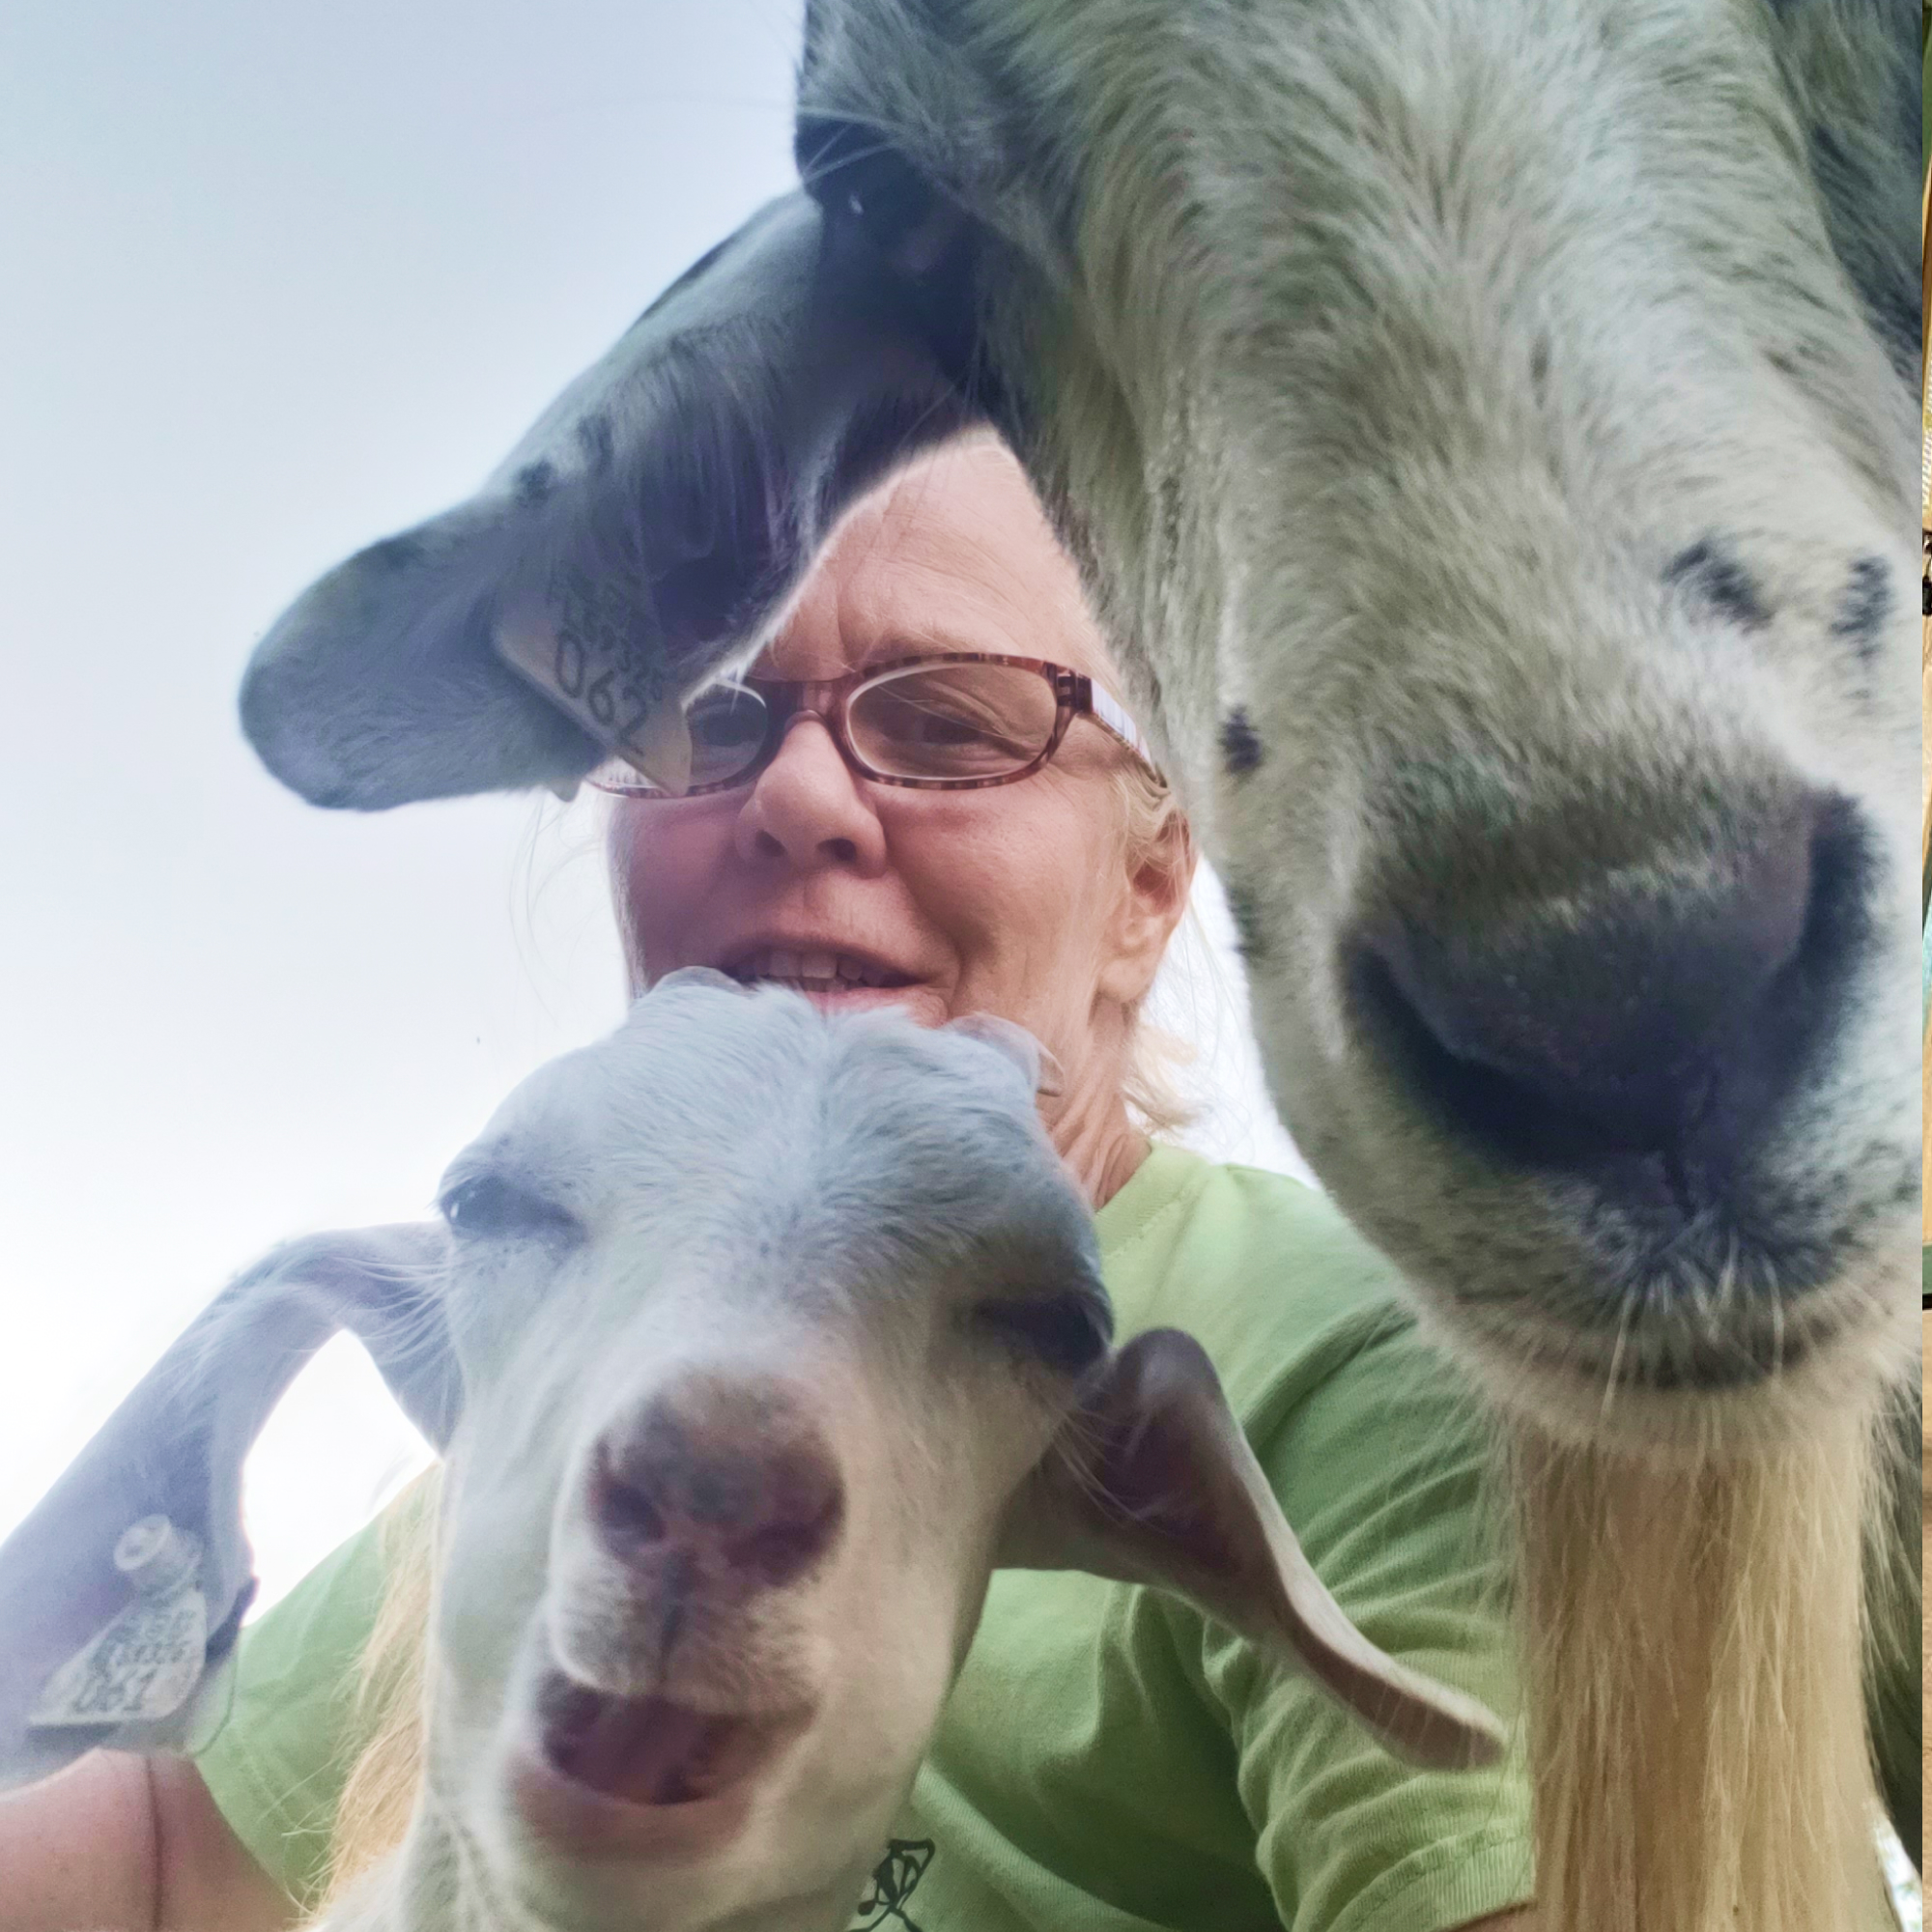 Chris with goats